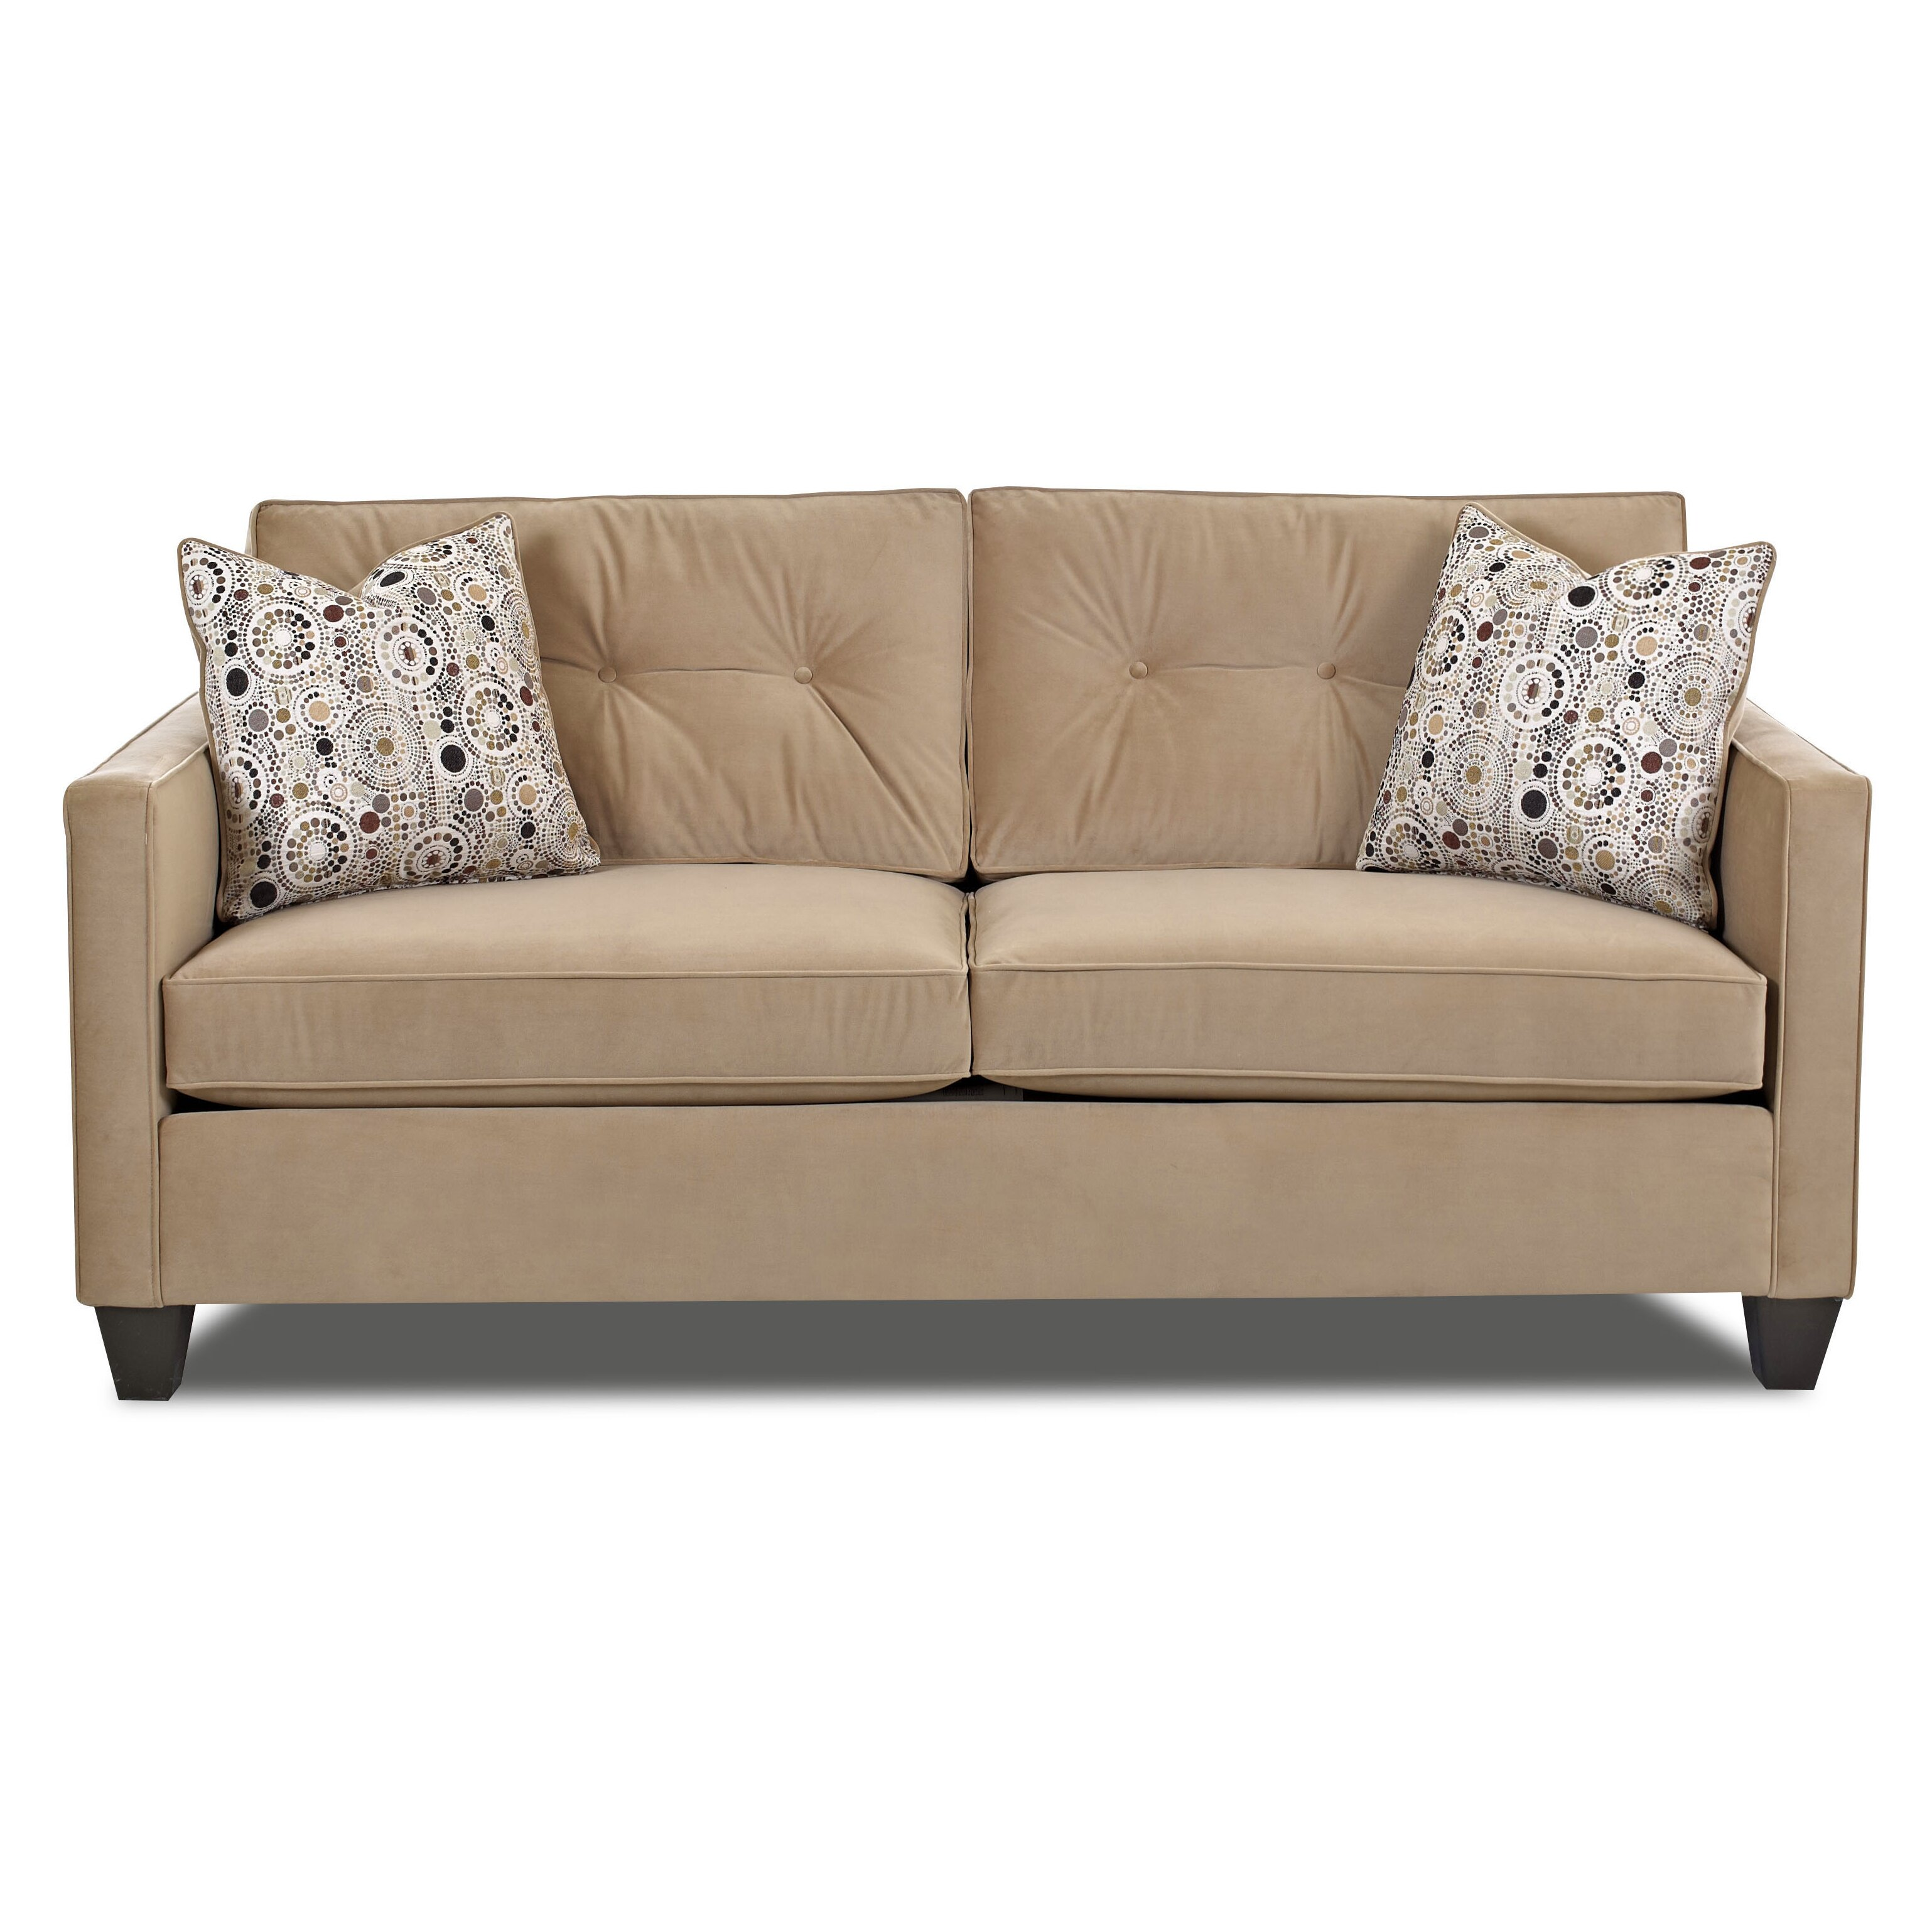 Sealy Leather Sofa: Klaussner Furniture Derry Sofa & Reviews